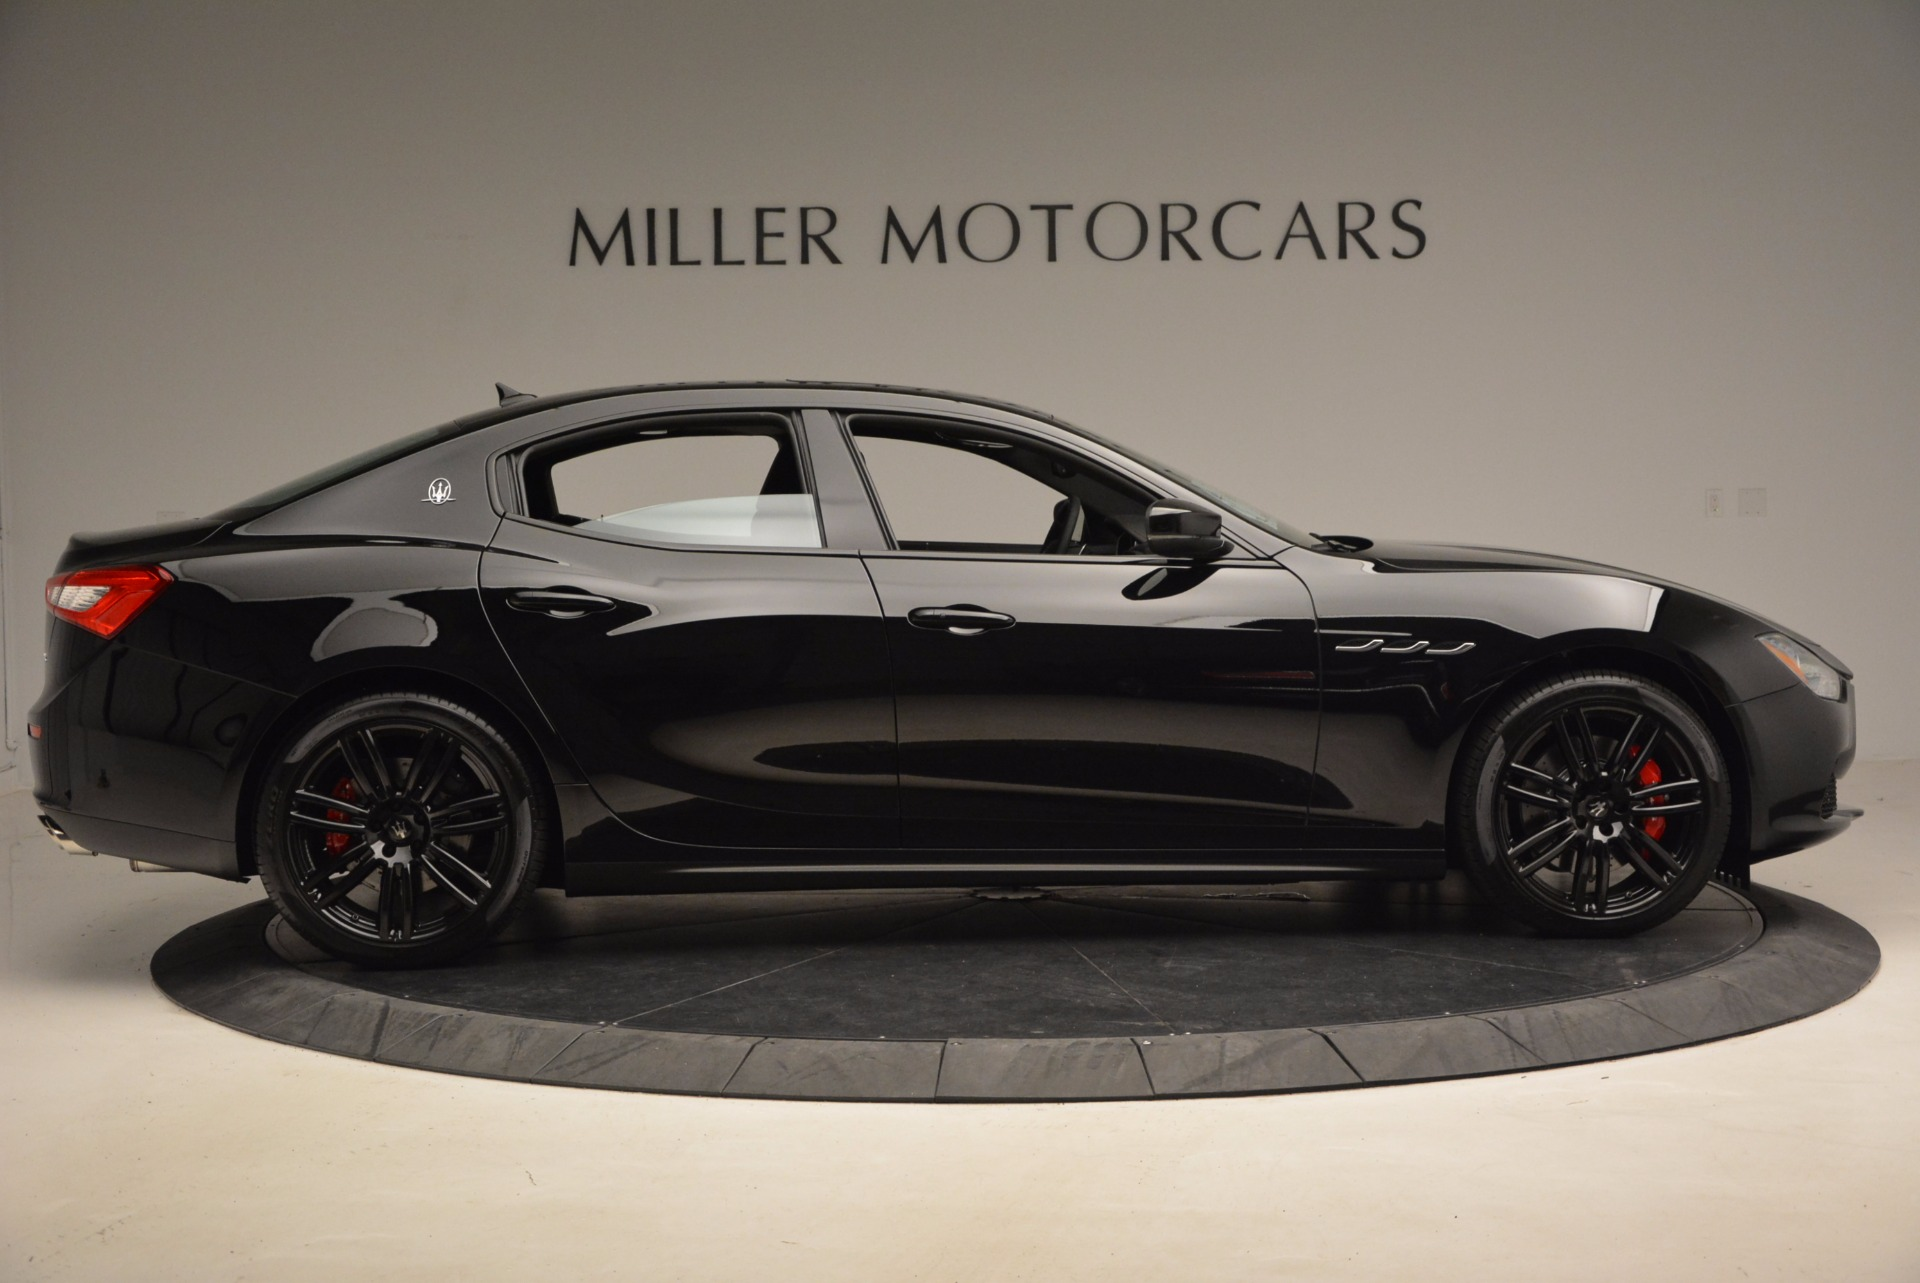 New 2017 Maserati Ghibli Nerissimo Edition S Q4 For Sale In Westport, CT 1391_p9